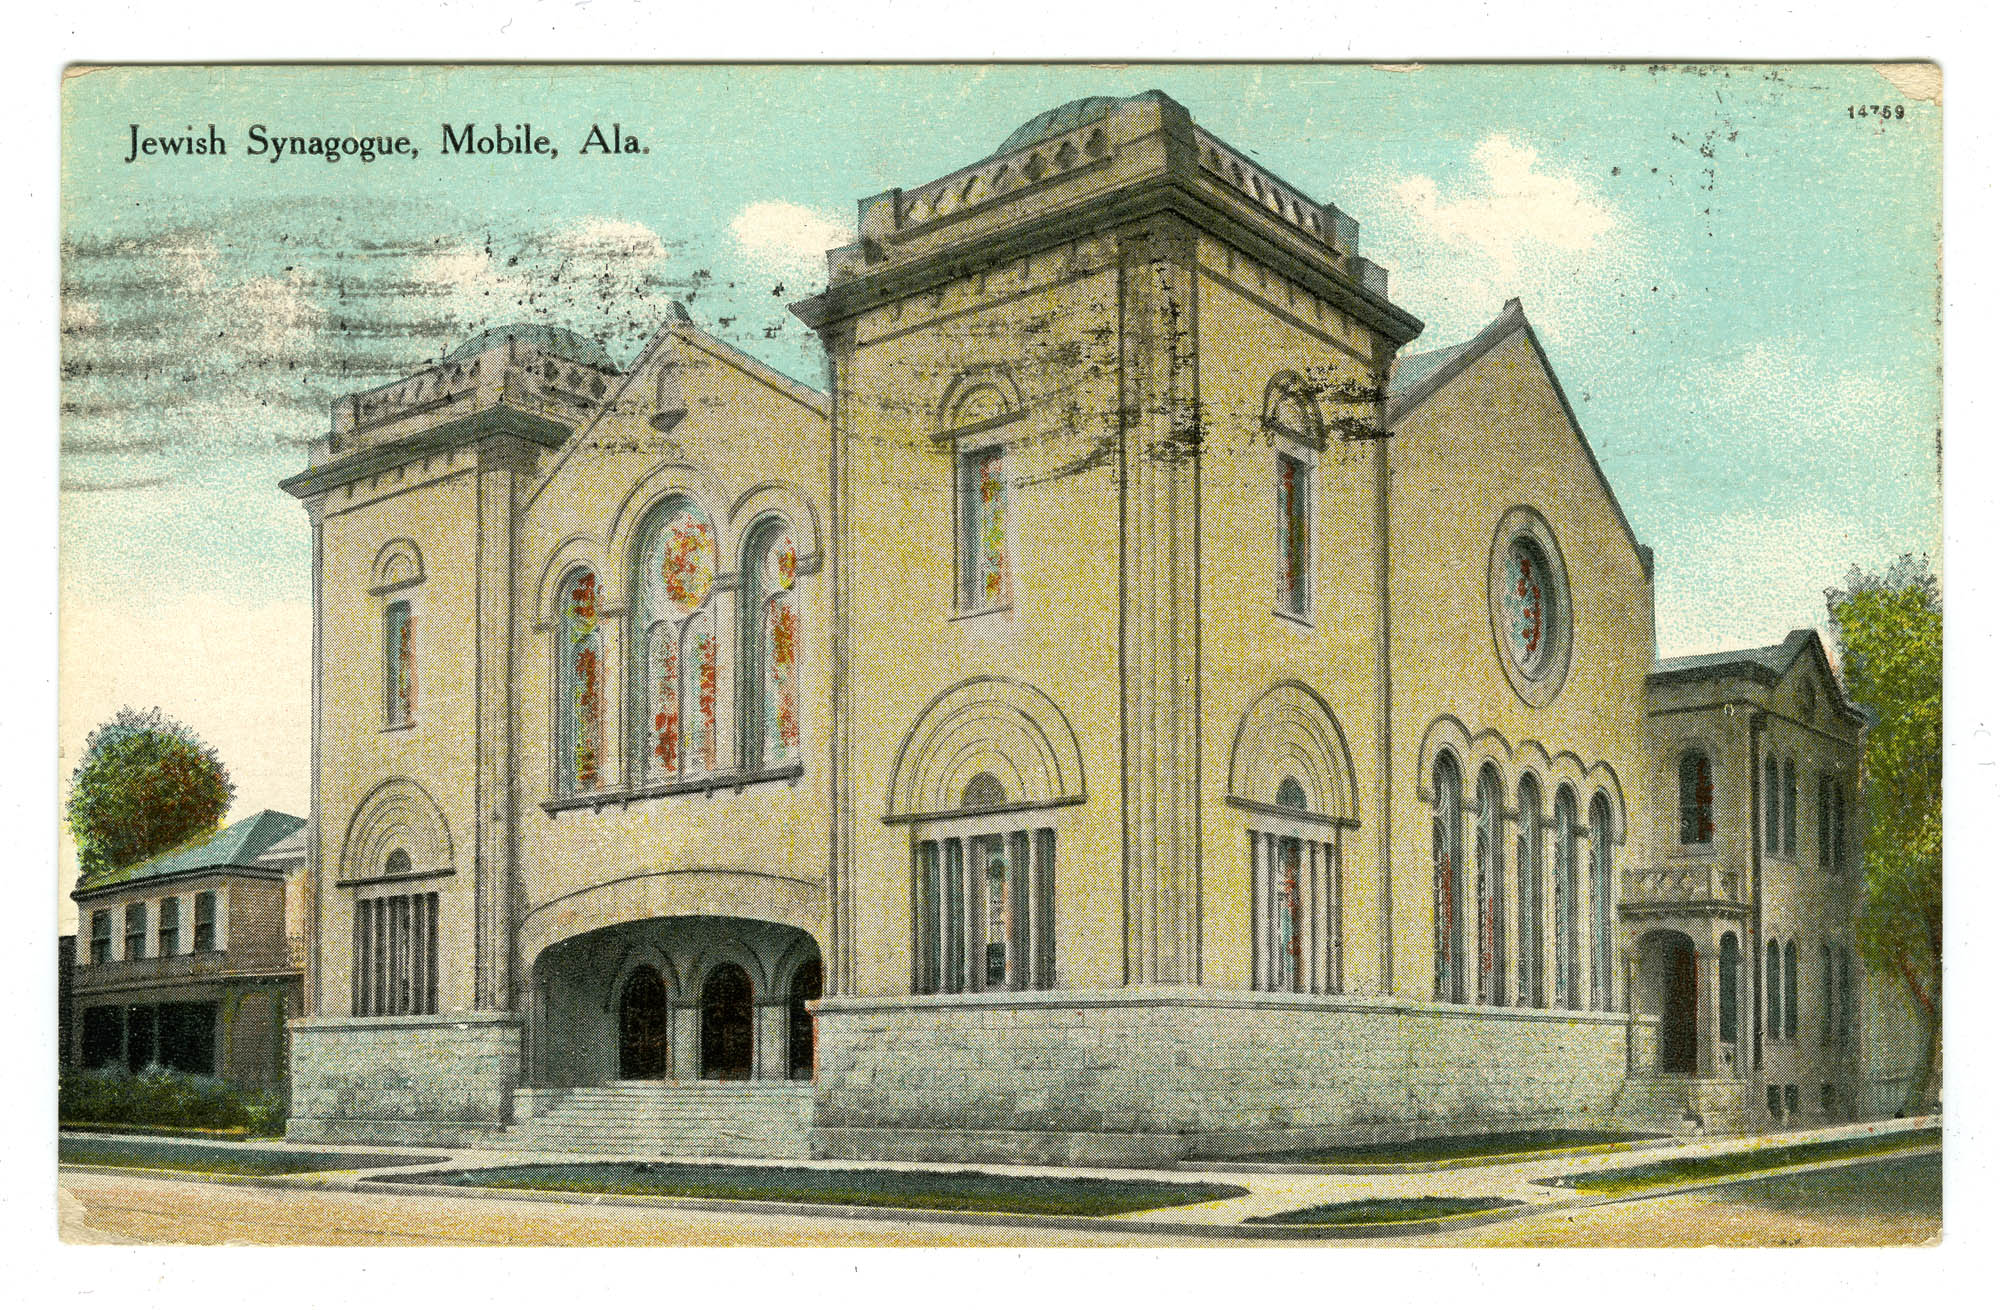 Jewish Synagogue, Mobile, Ala.